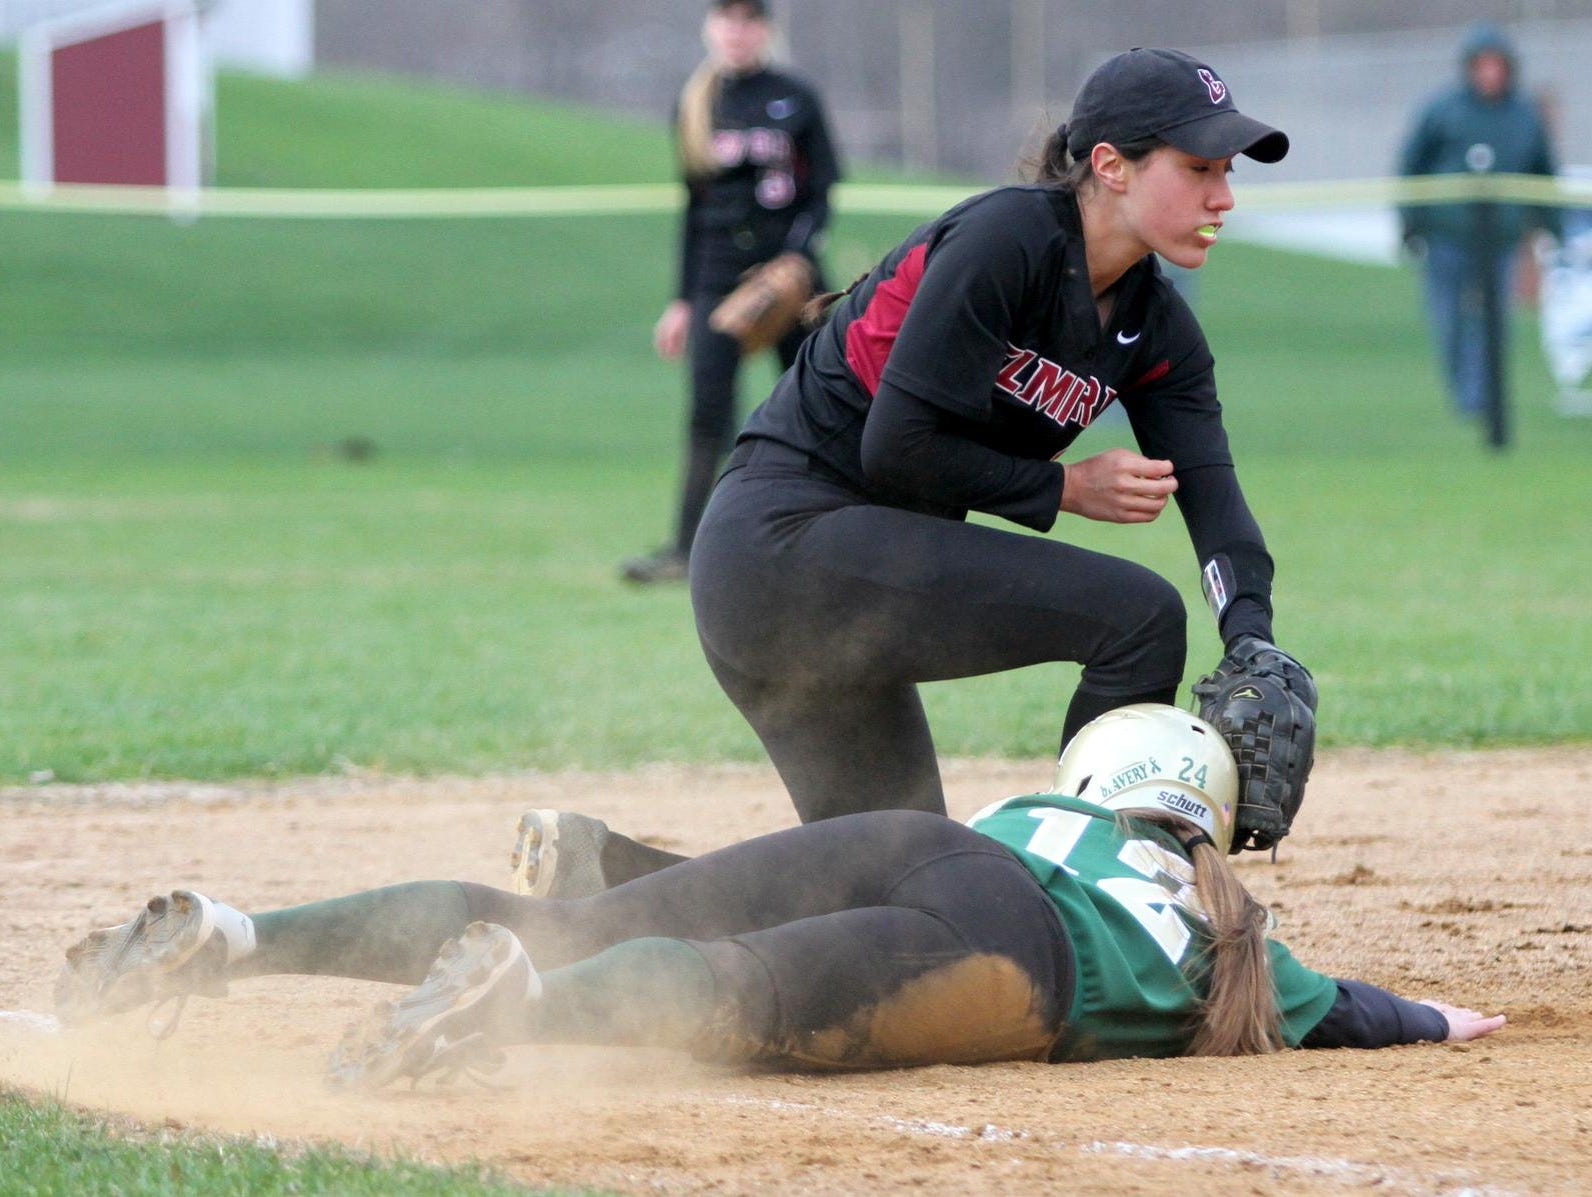 Elmira's Sarah Topping applies a tag against Vestal this past season. She was one of three Express players to earn STAC Metro/West all-conference honors.